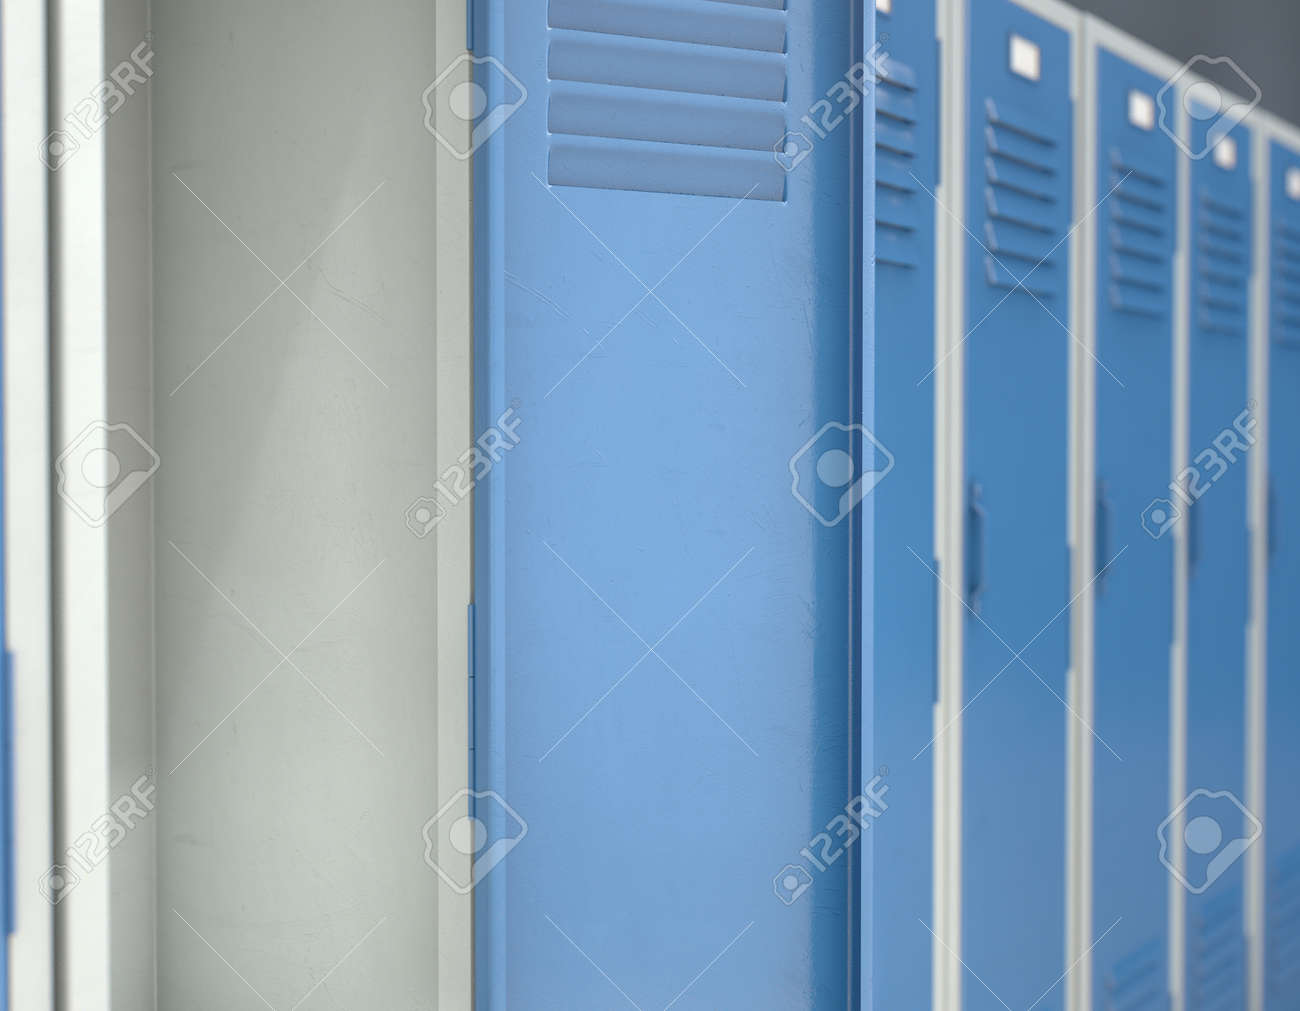 A Row Of Blue Metal School Lockers With One Open Door Revealing Stock Photo Picture And Royalty Free Image Image 104172761